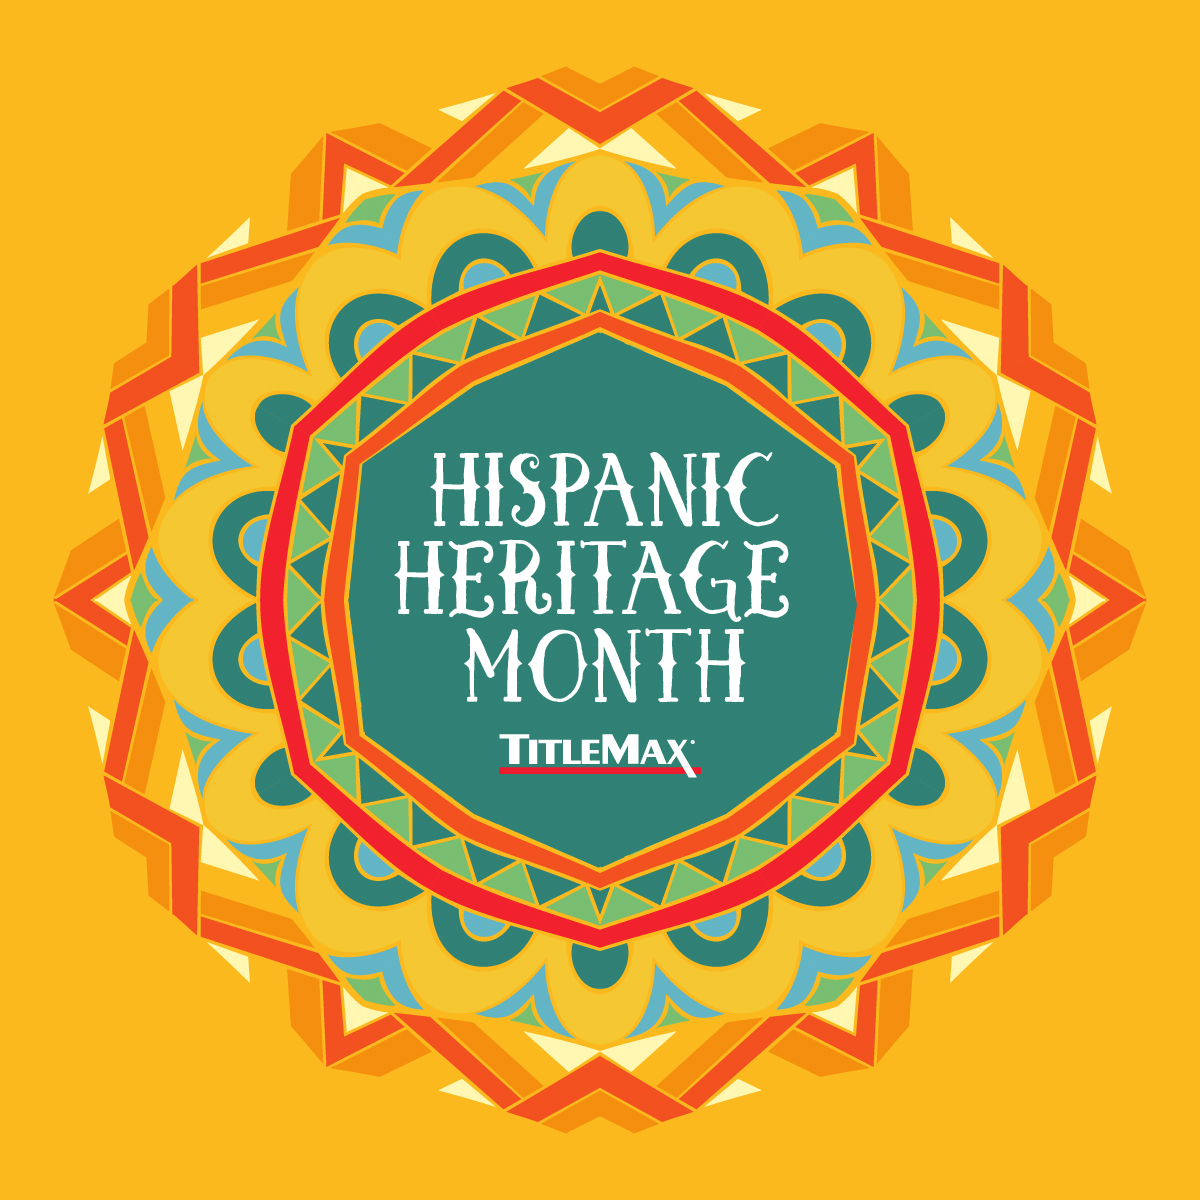 IT'S NATIONAL HISPANIC HERITAGE MONTH!